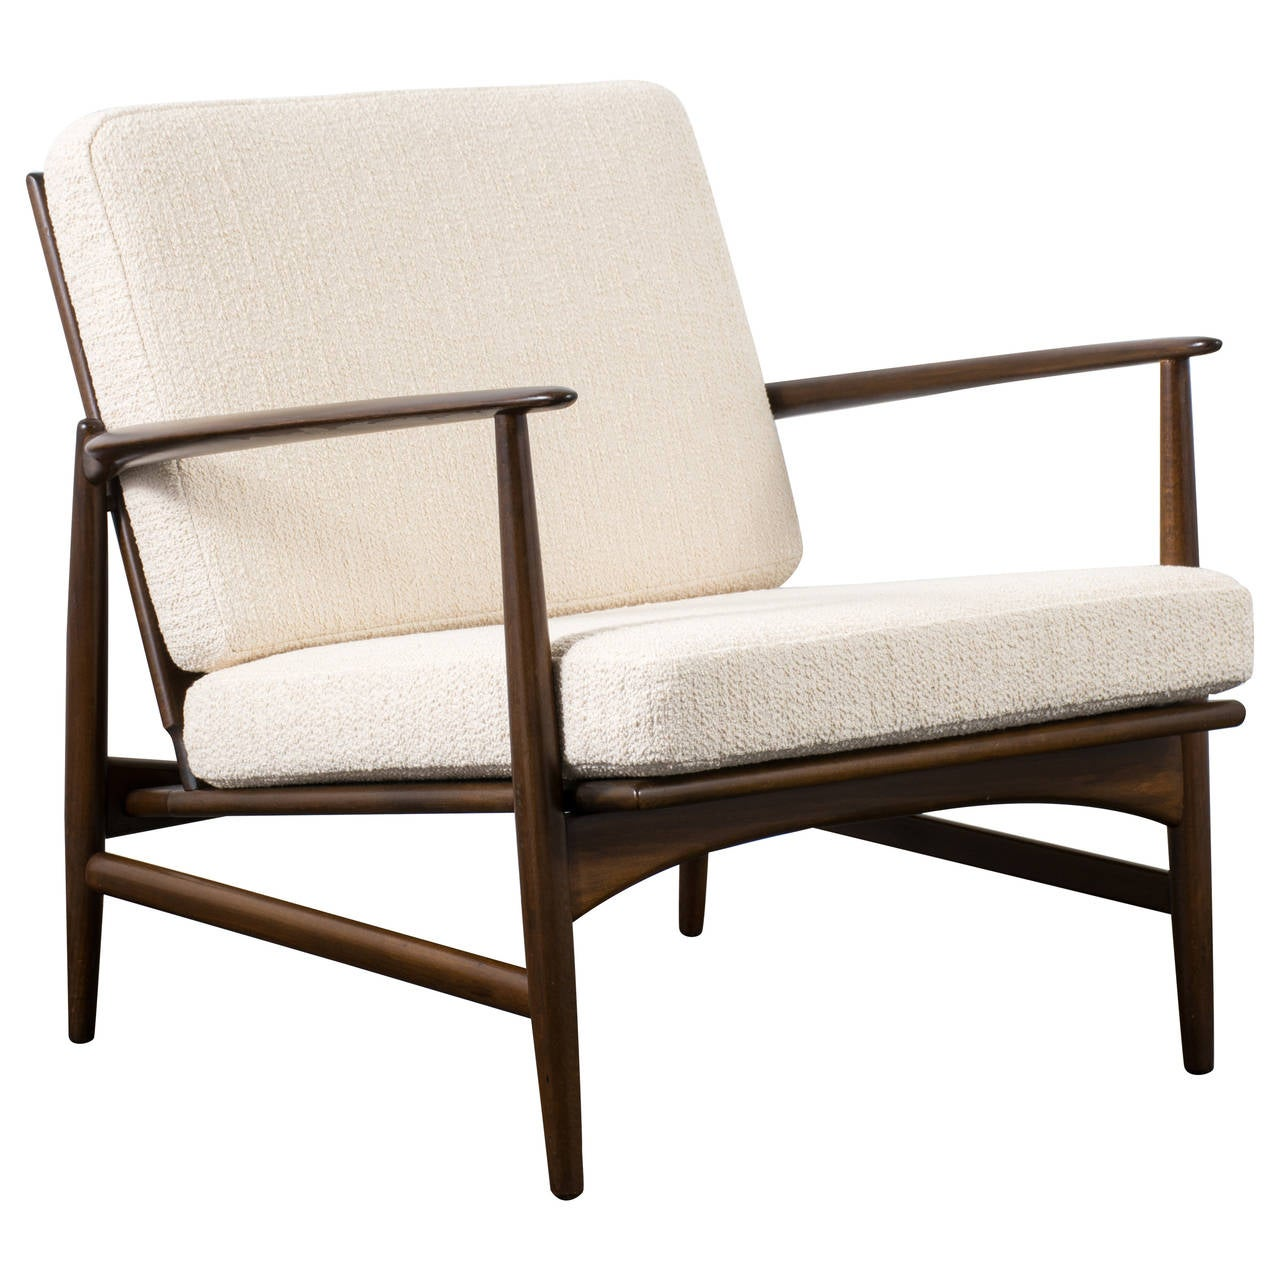 Danish modern lounge chair by kofod larsen for selig at 1stdibs